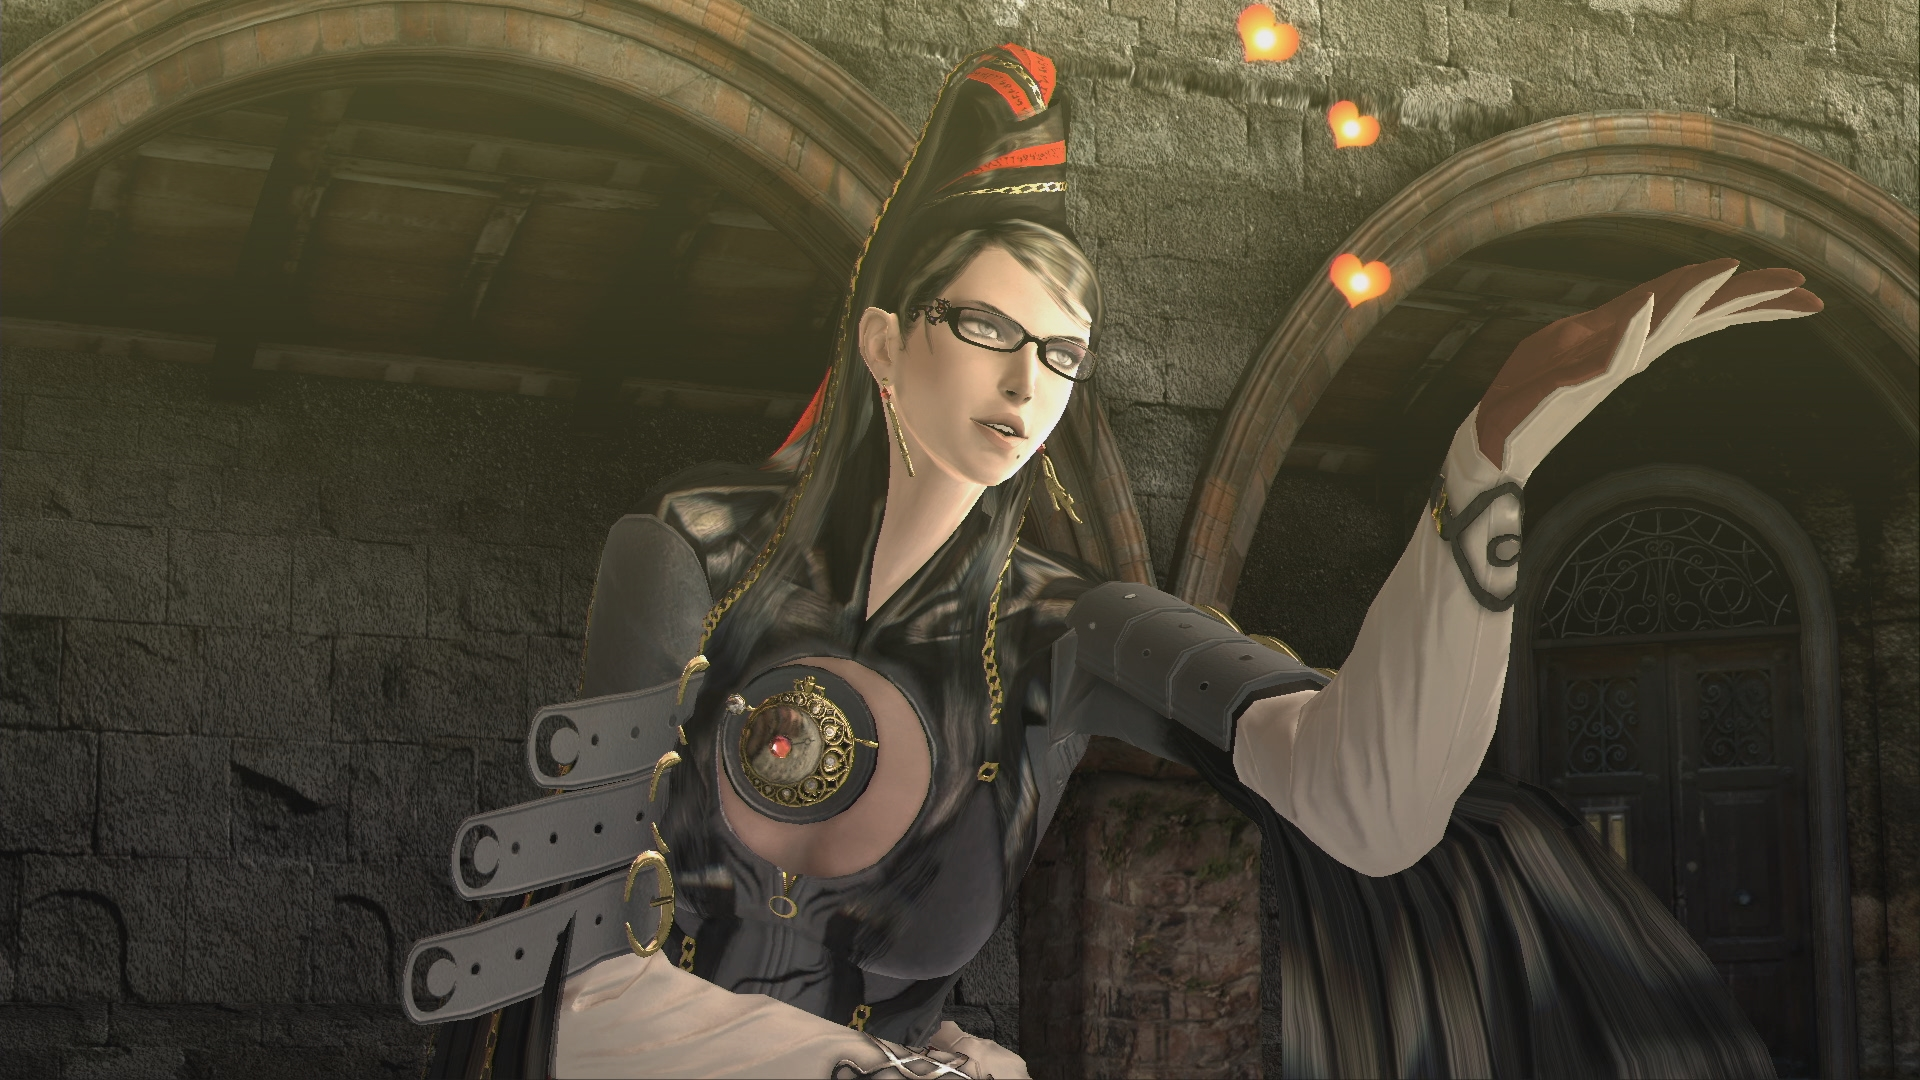 Bayonetta (PC) - fly her to the moon